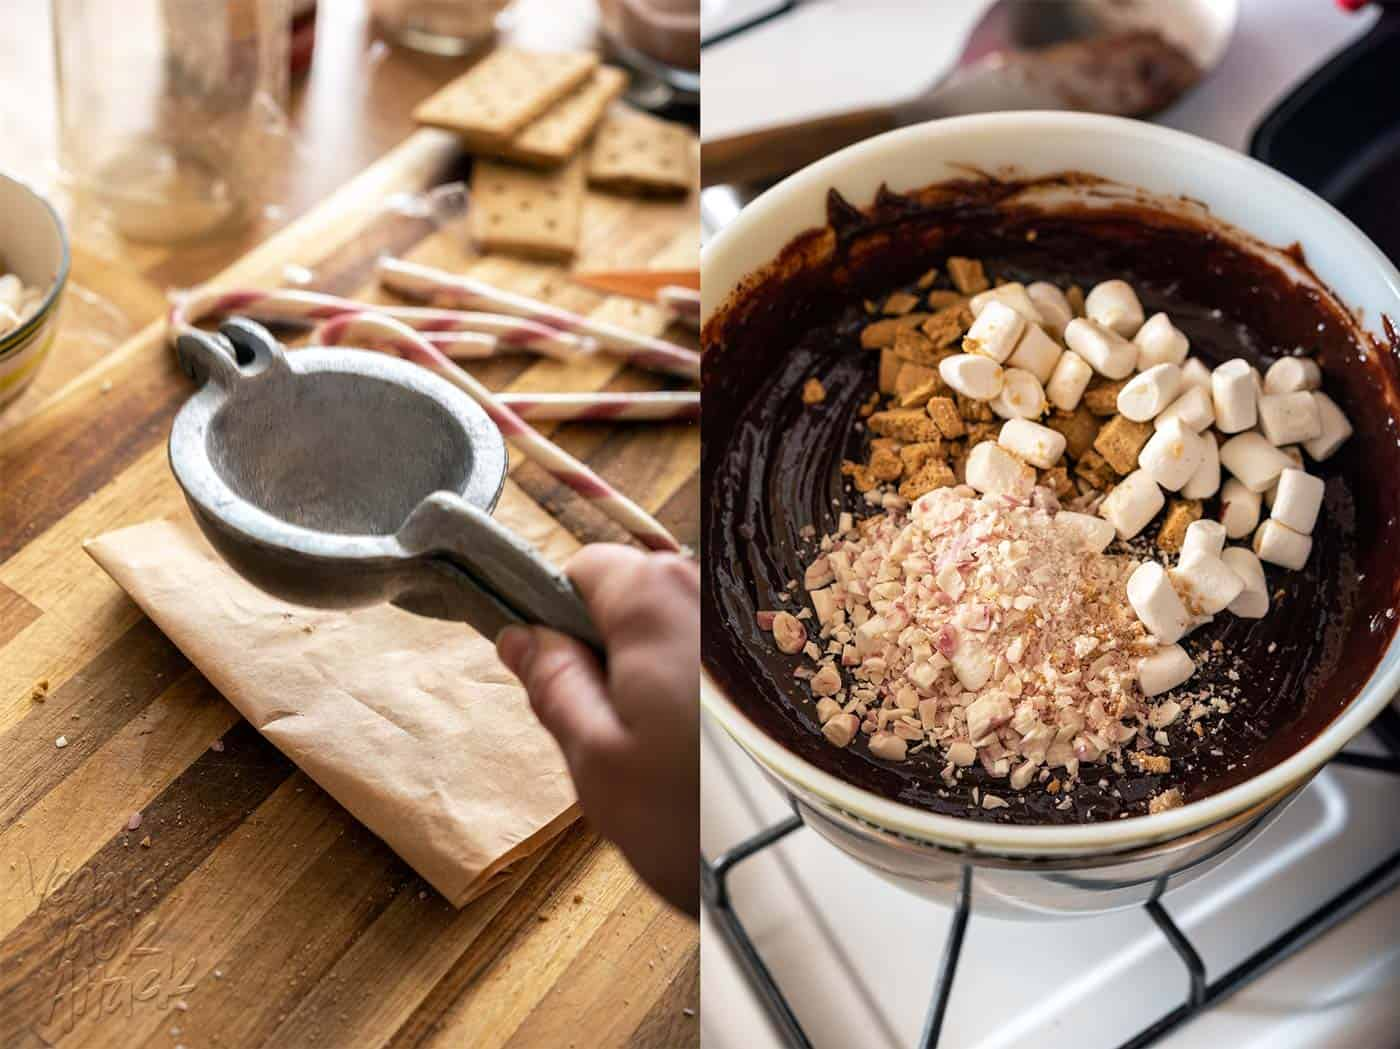 Left image: hitting a paper bag filled with candy cane to crush the pieces. Right image: Mix-ins being added to fudge base